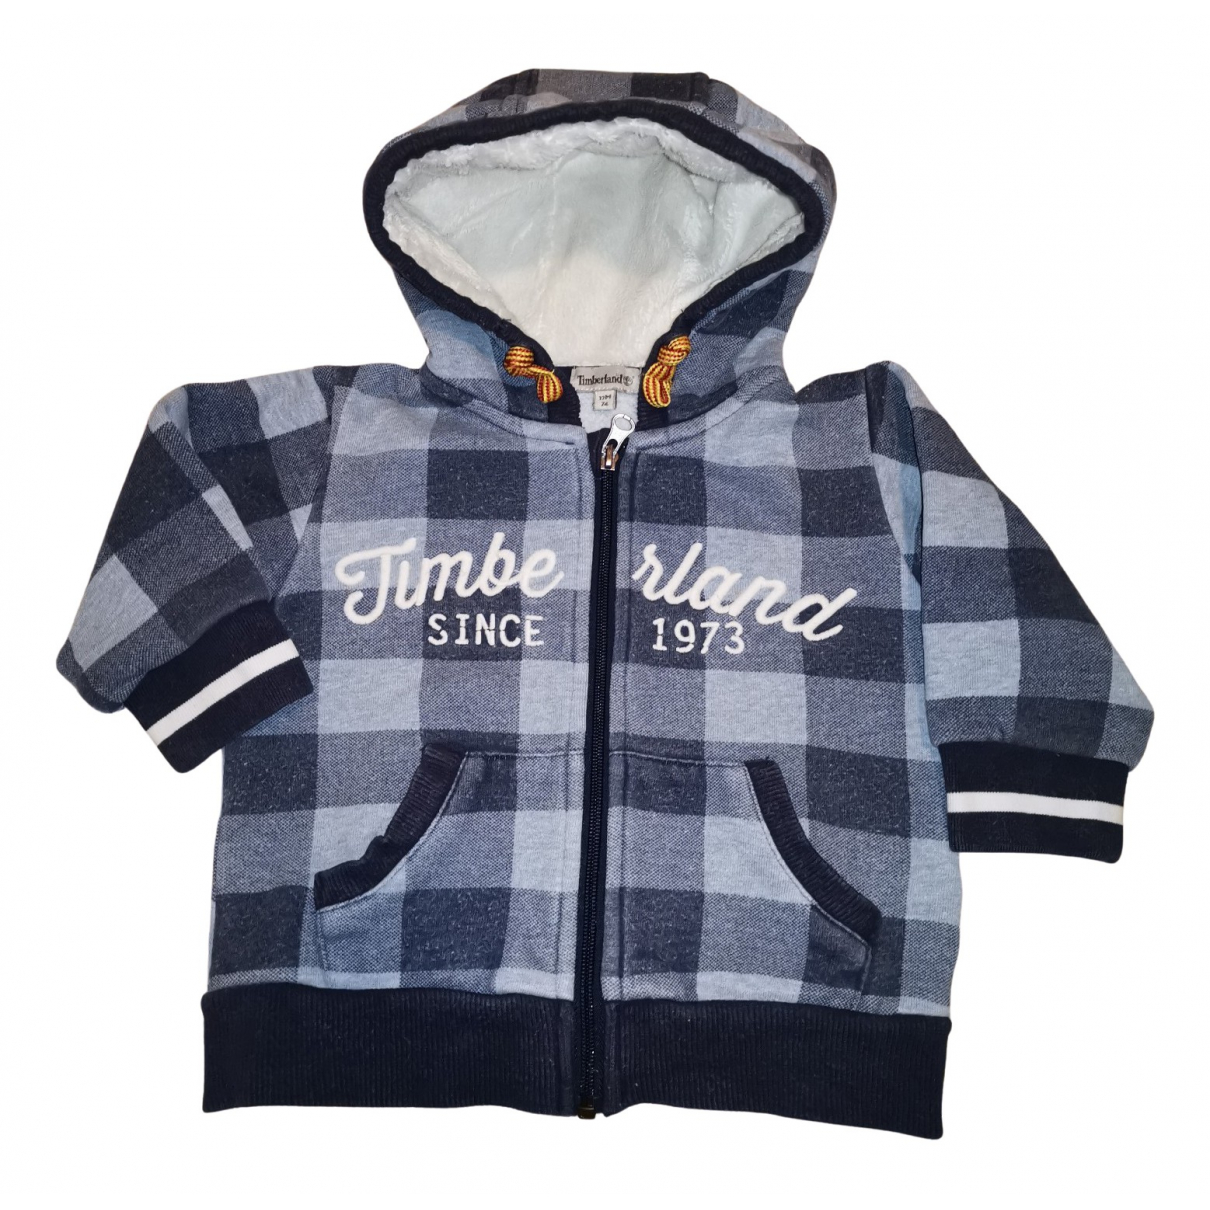 Timberland N Multicolour Cotton jacket & coat for Kids 12 months - up to 74cm FR